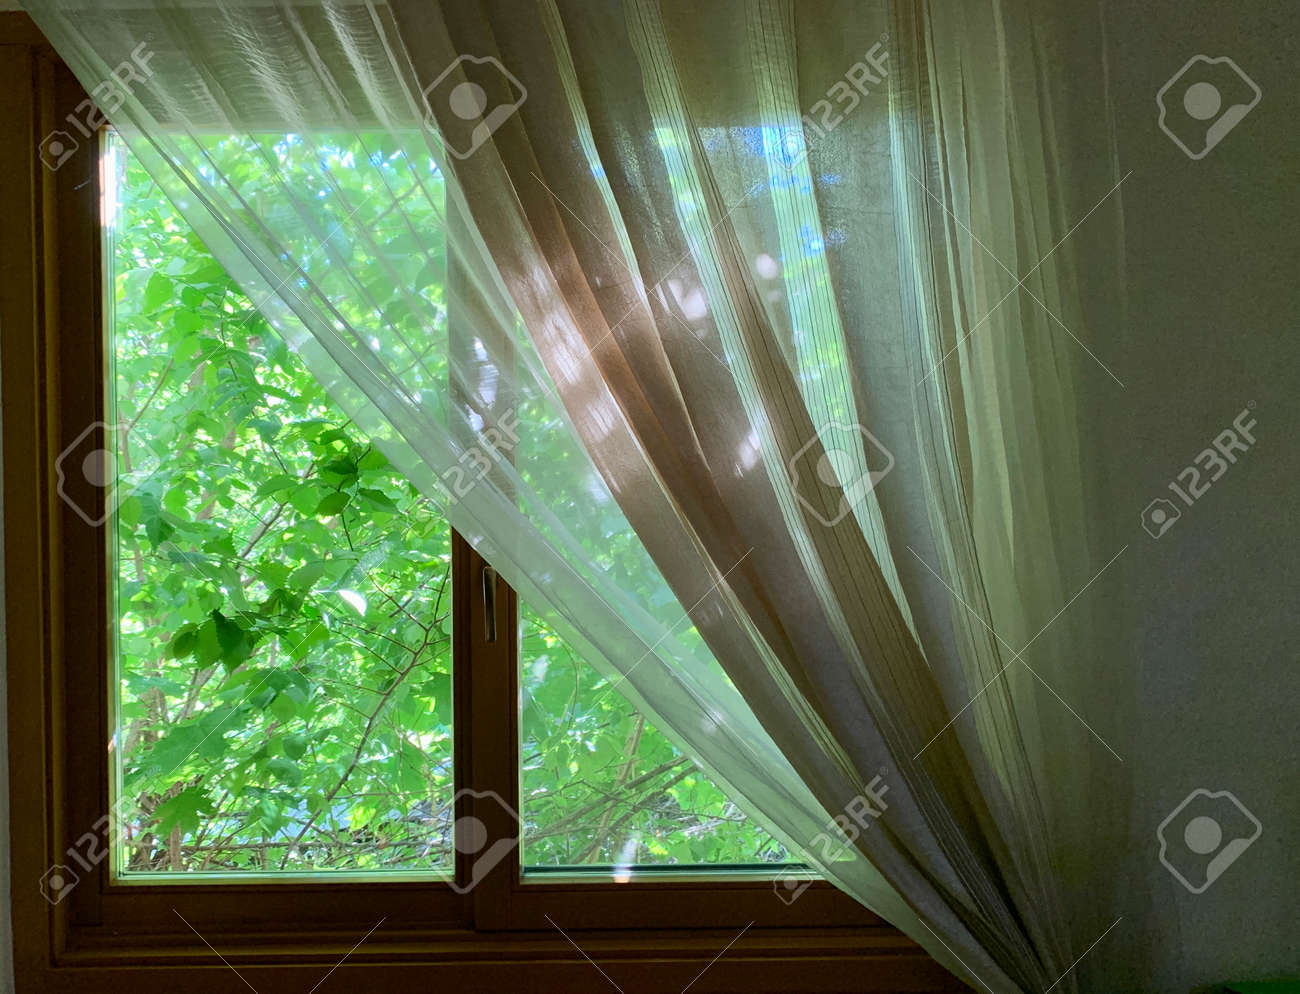 Sunny spring outside the window. Window in the house on a background of green plants. The sun's rays penetrate the house through the windows. - 147409481